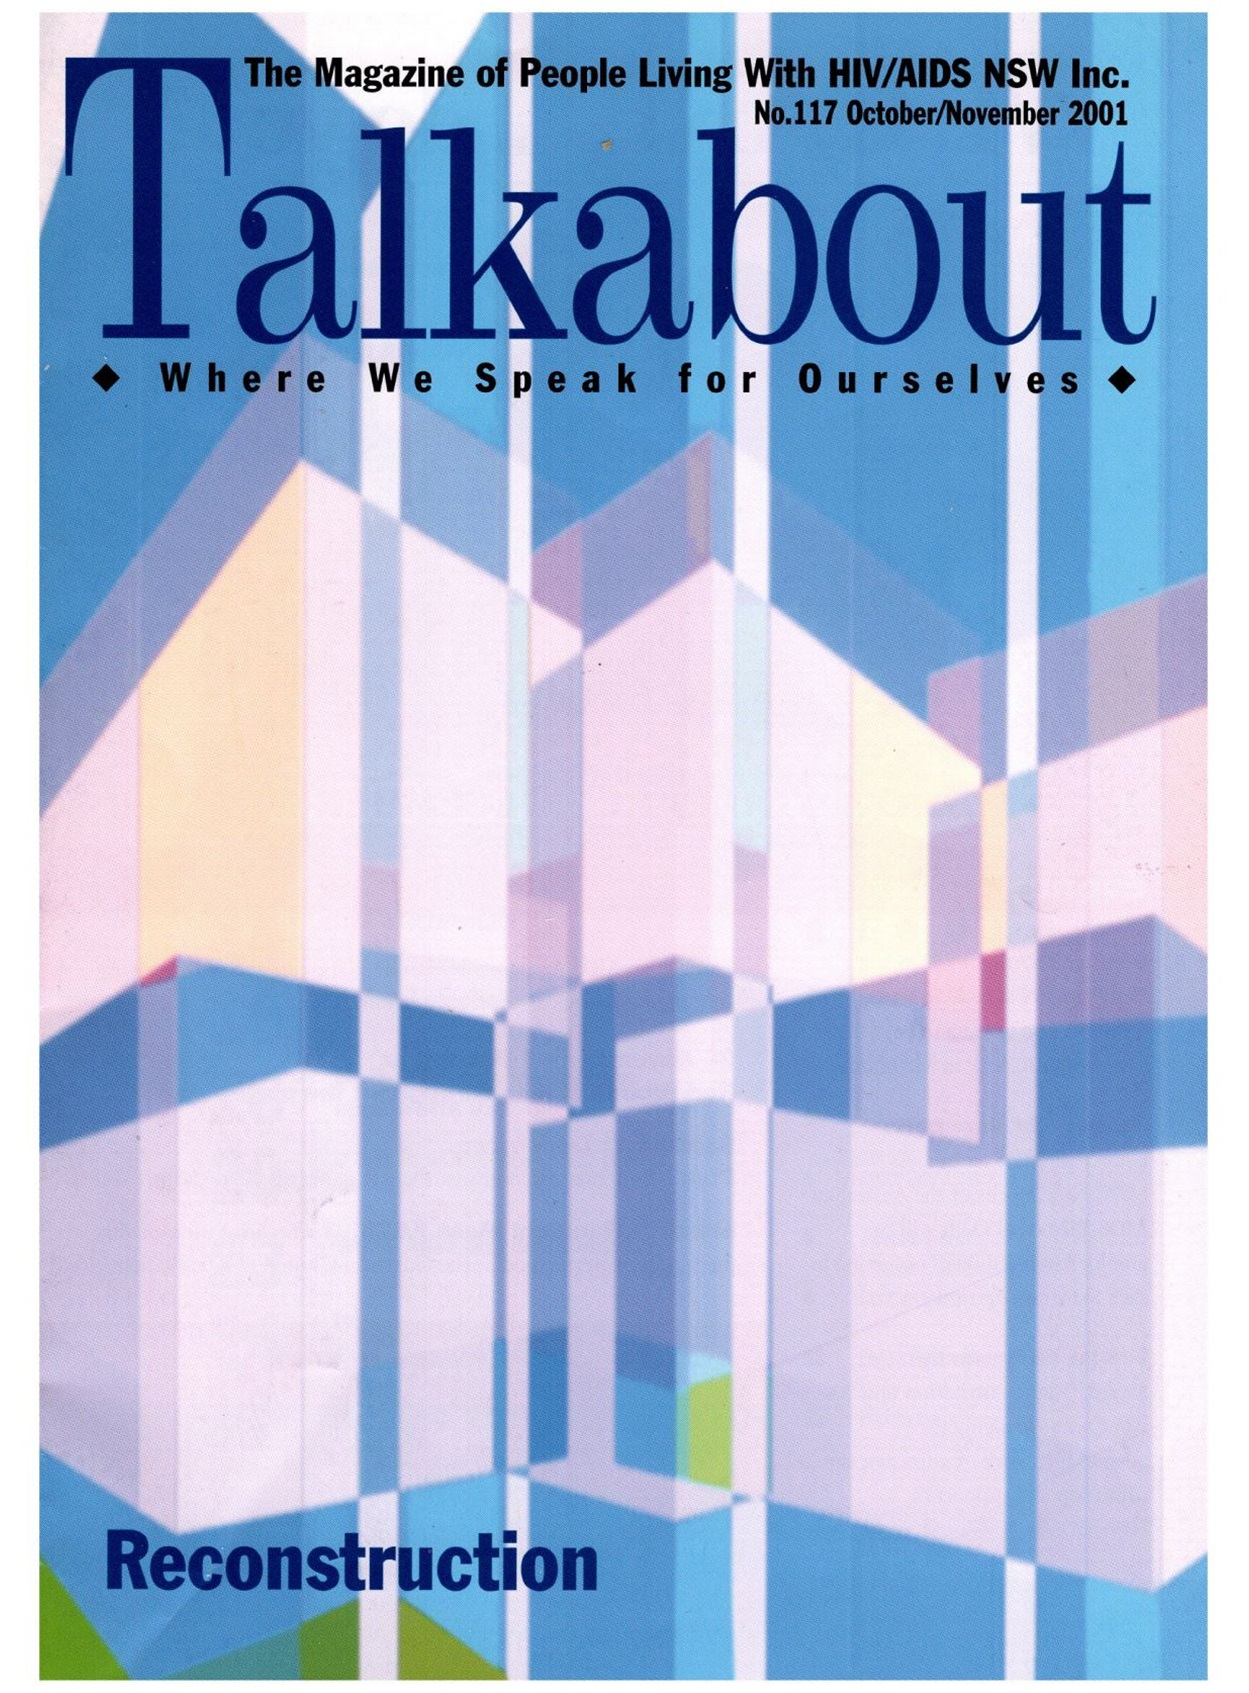 Talkabout Edition #117